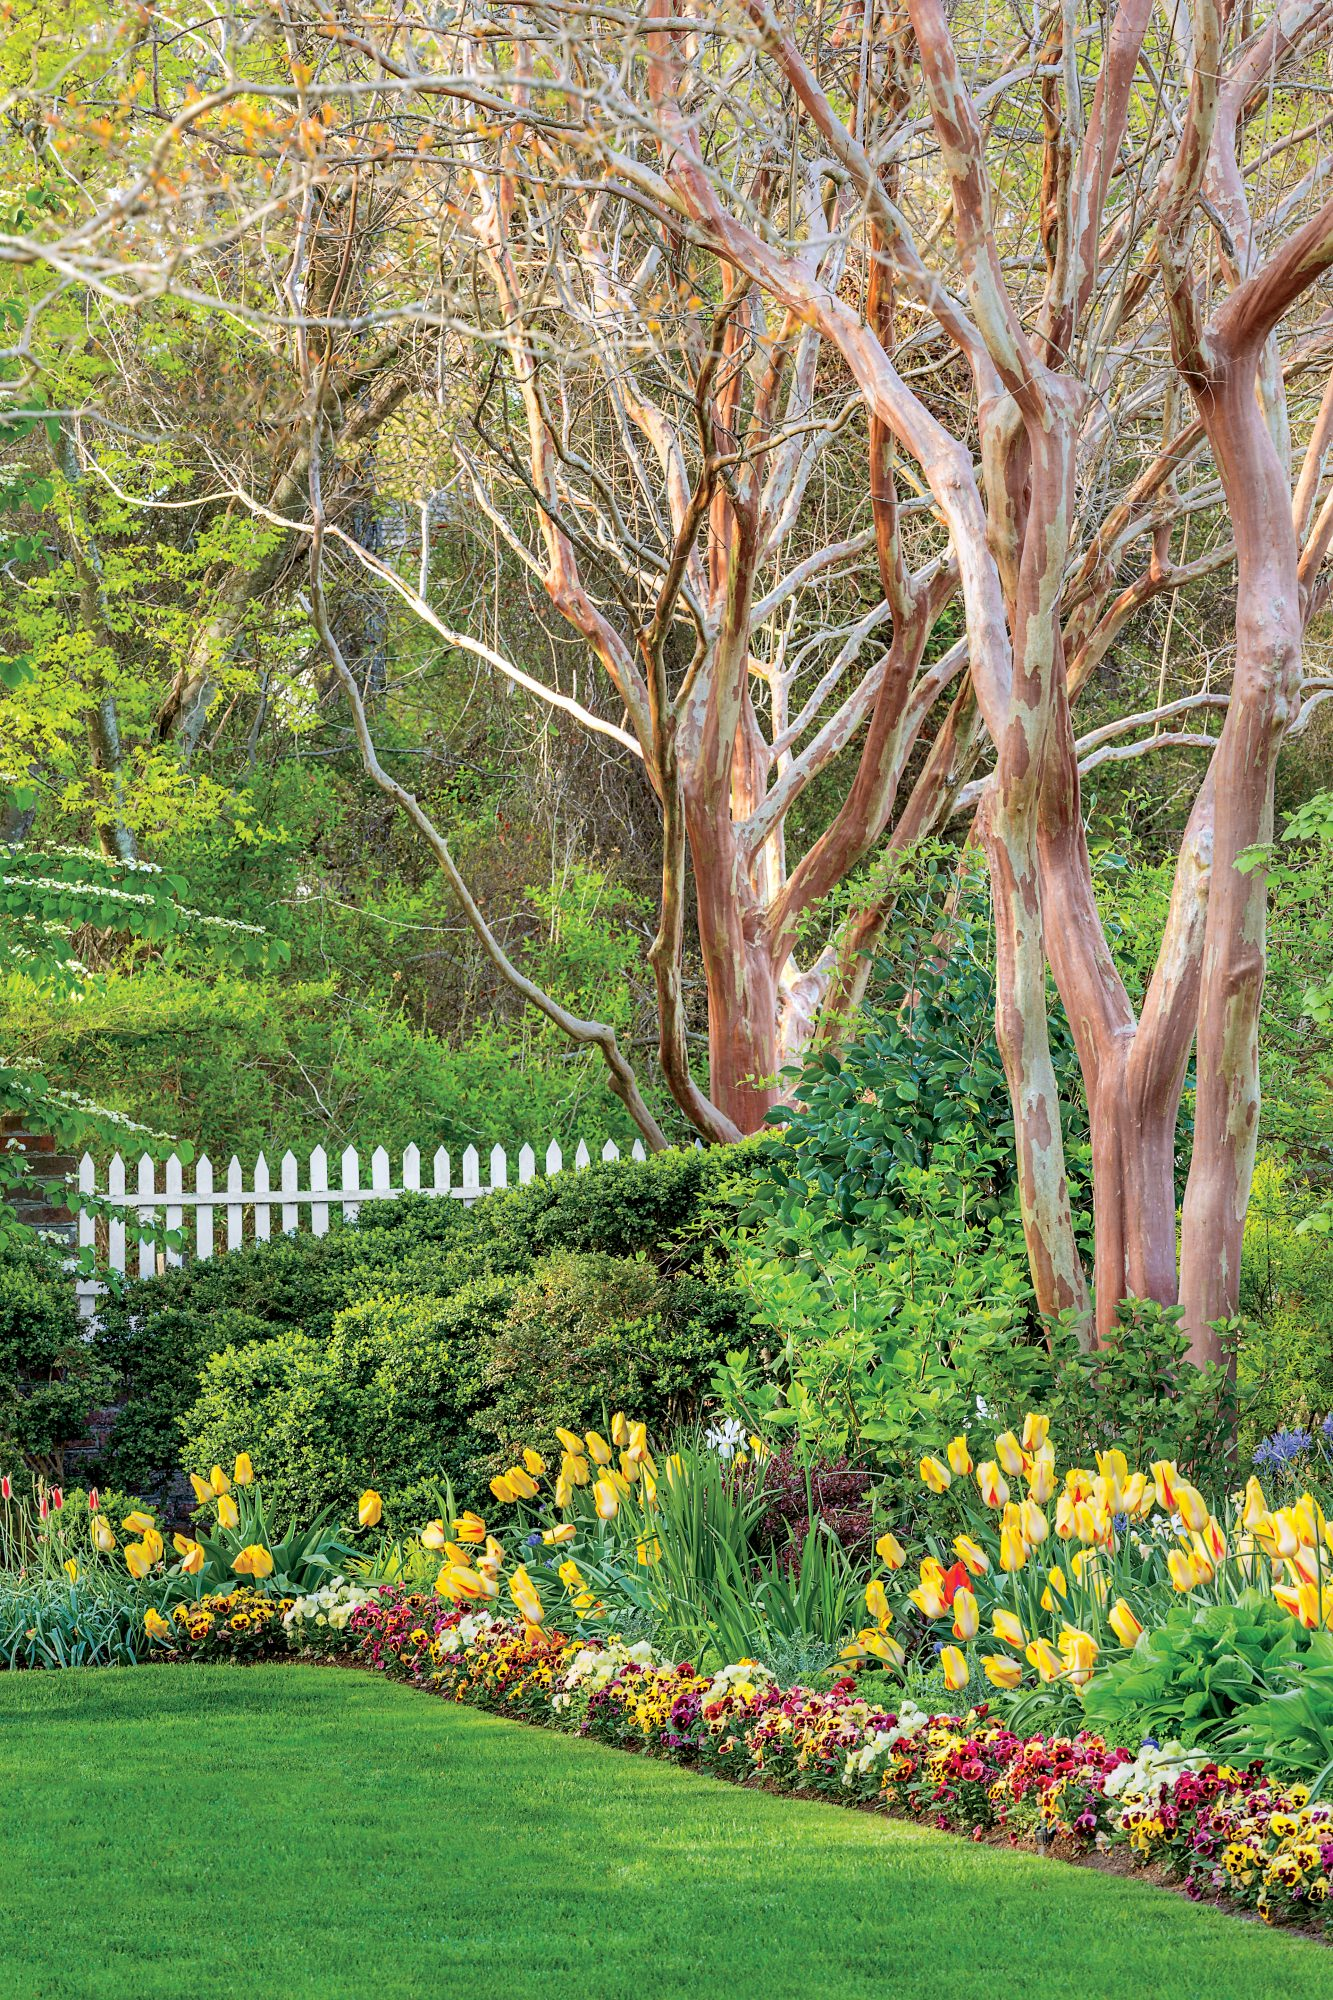 The Spring gardens at Eyre Hall, in Cheriton, Virginia.